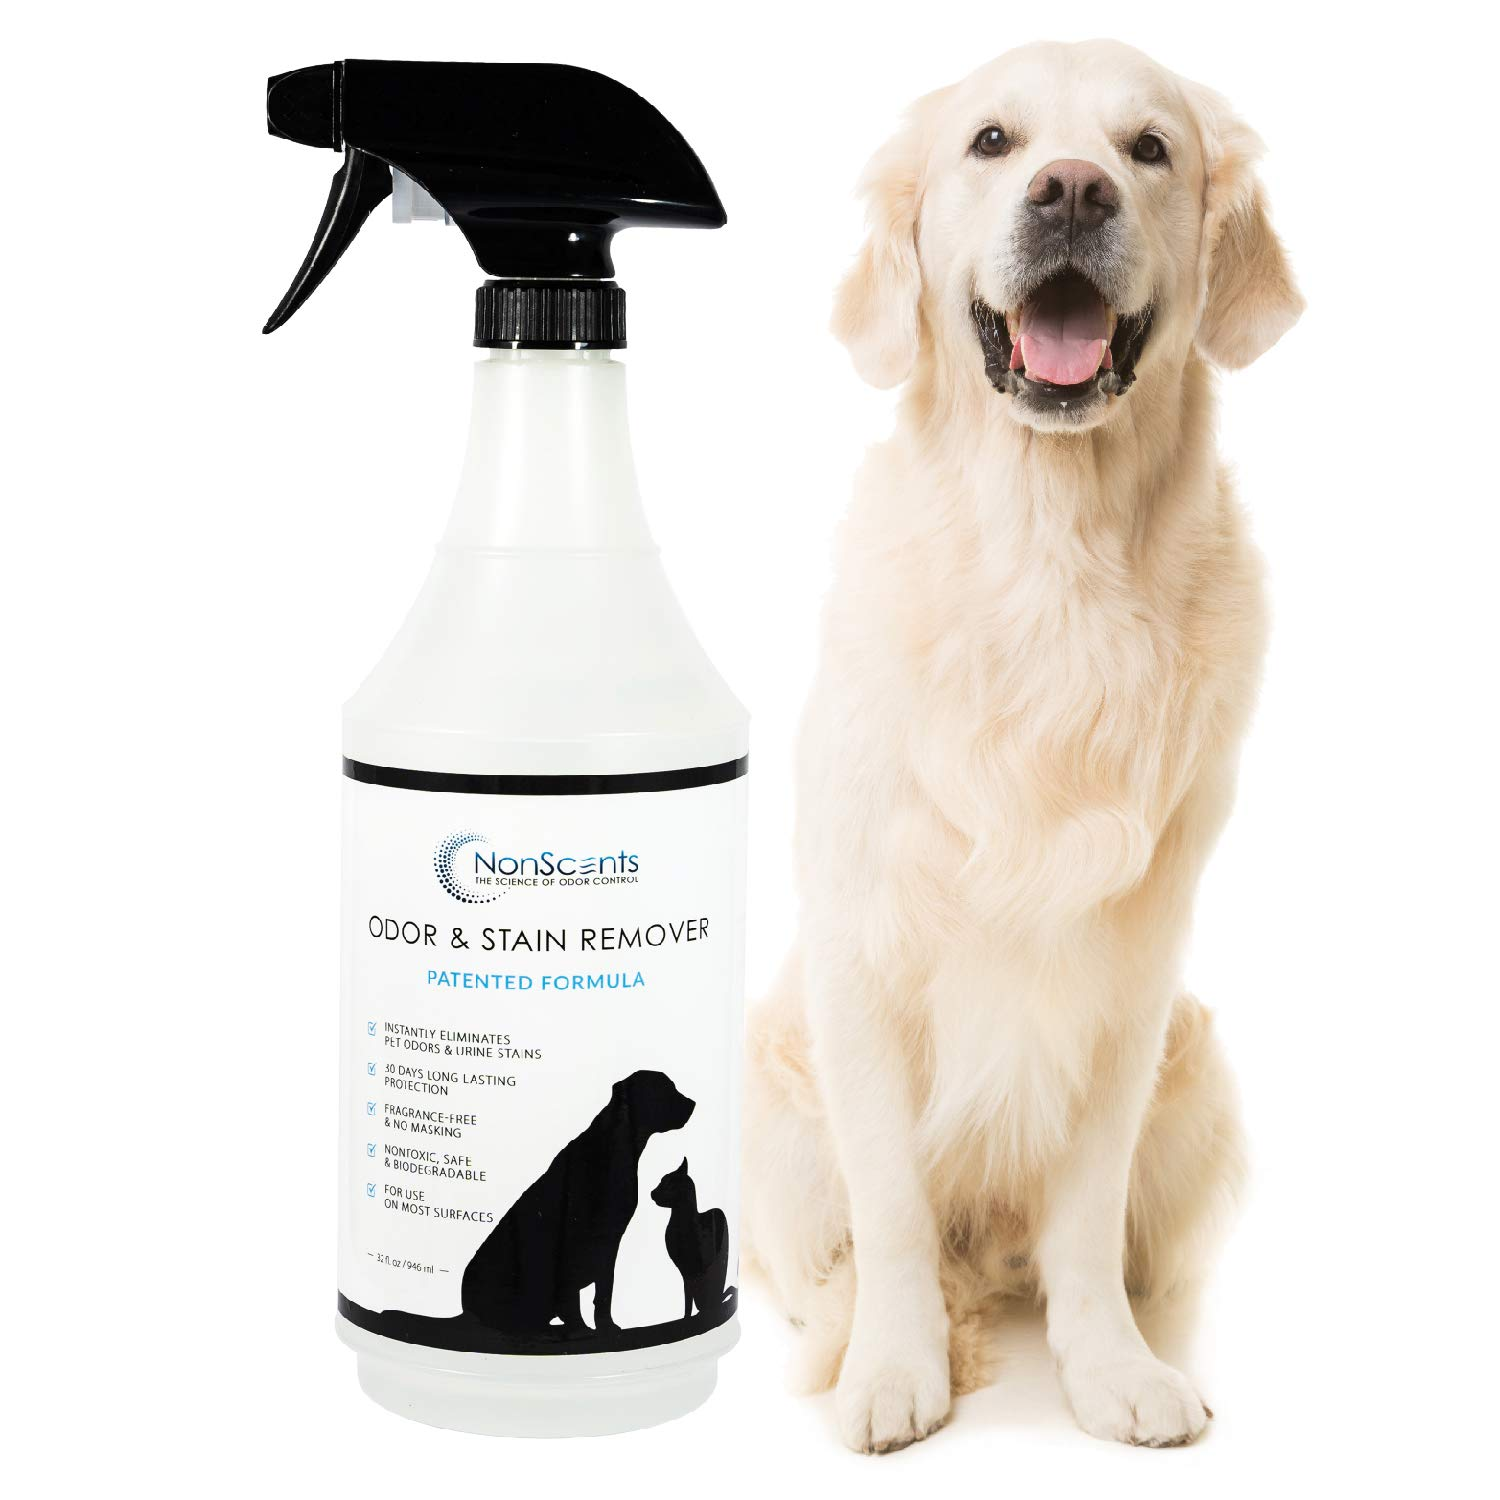 NonScents Pet Odor & Stain Remover Spray - Pet Stain & Odor Eliminator for Dog and